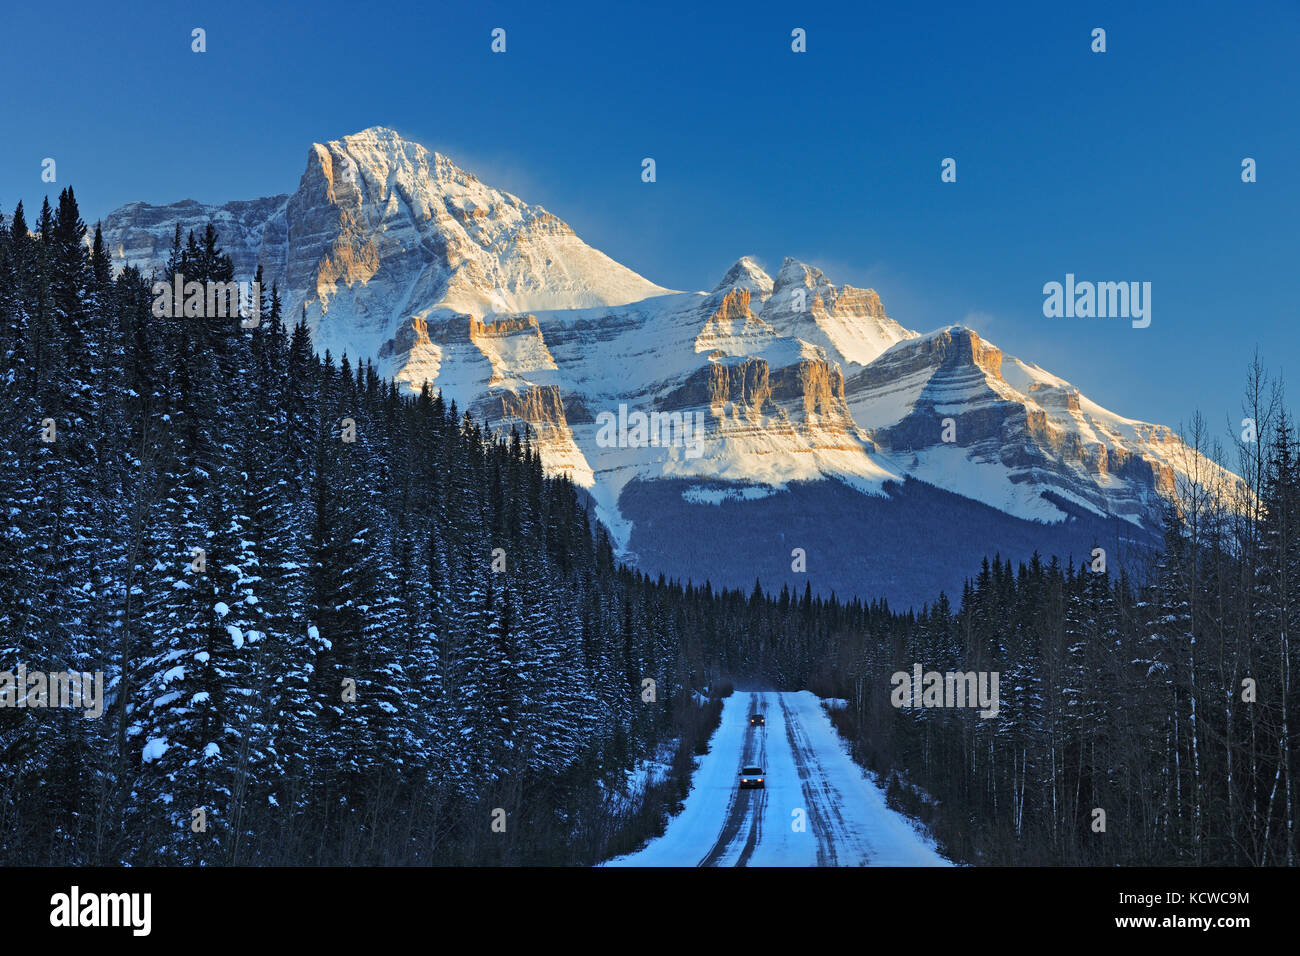 The Icefields Parkway  in the Canadian Rocky Mountains in evening light, Banff National Park, Alberta, Canada - Stock Image